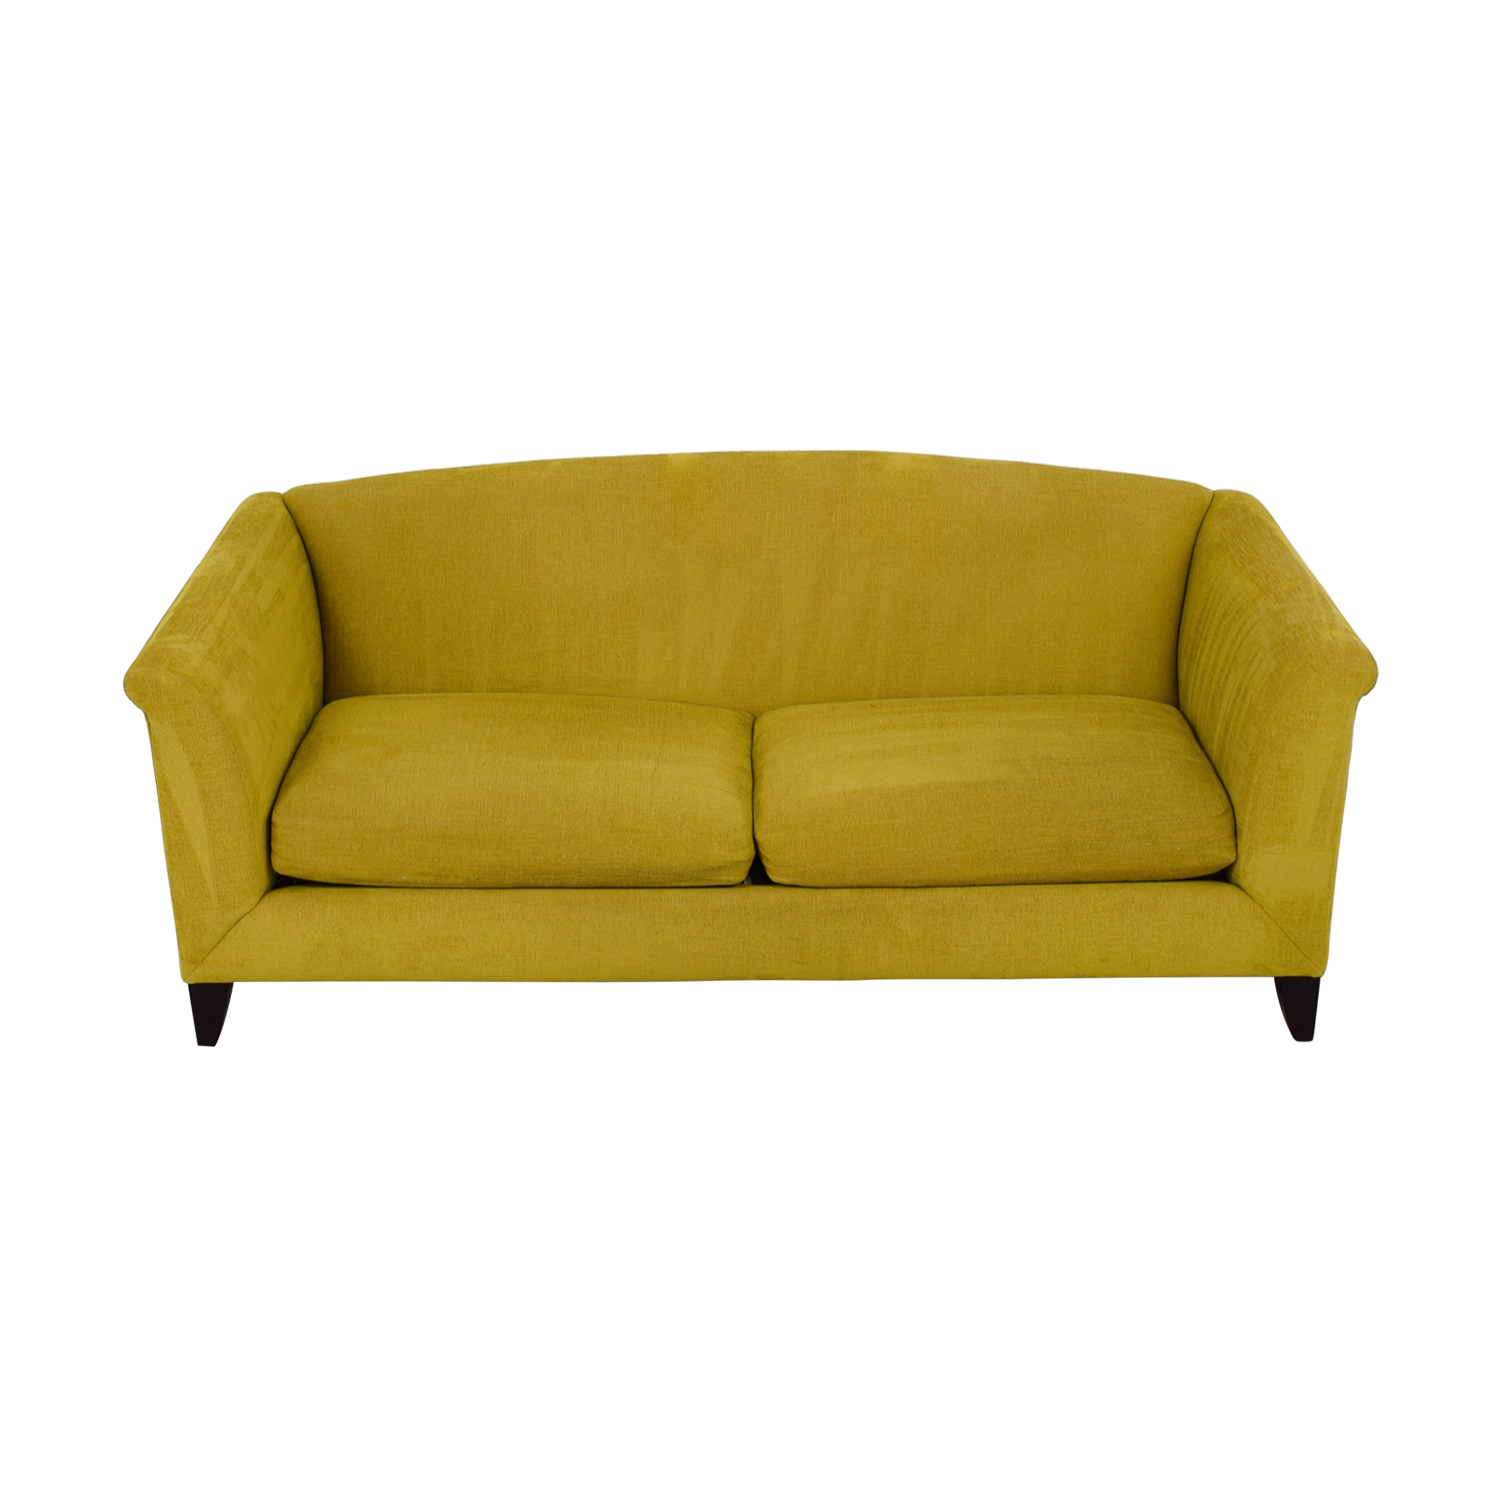 Crate & Barrel Silhouette Yellow Two-Cushion Sofa Crate & Barrel